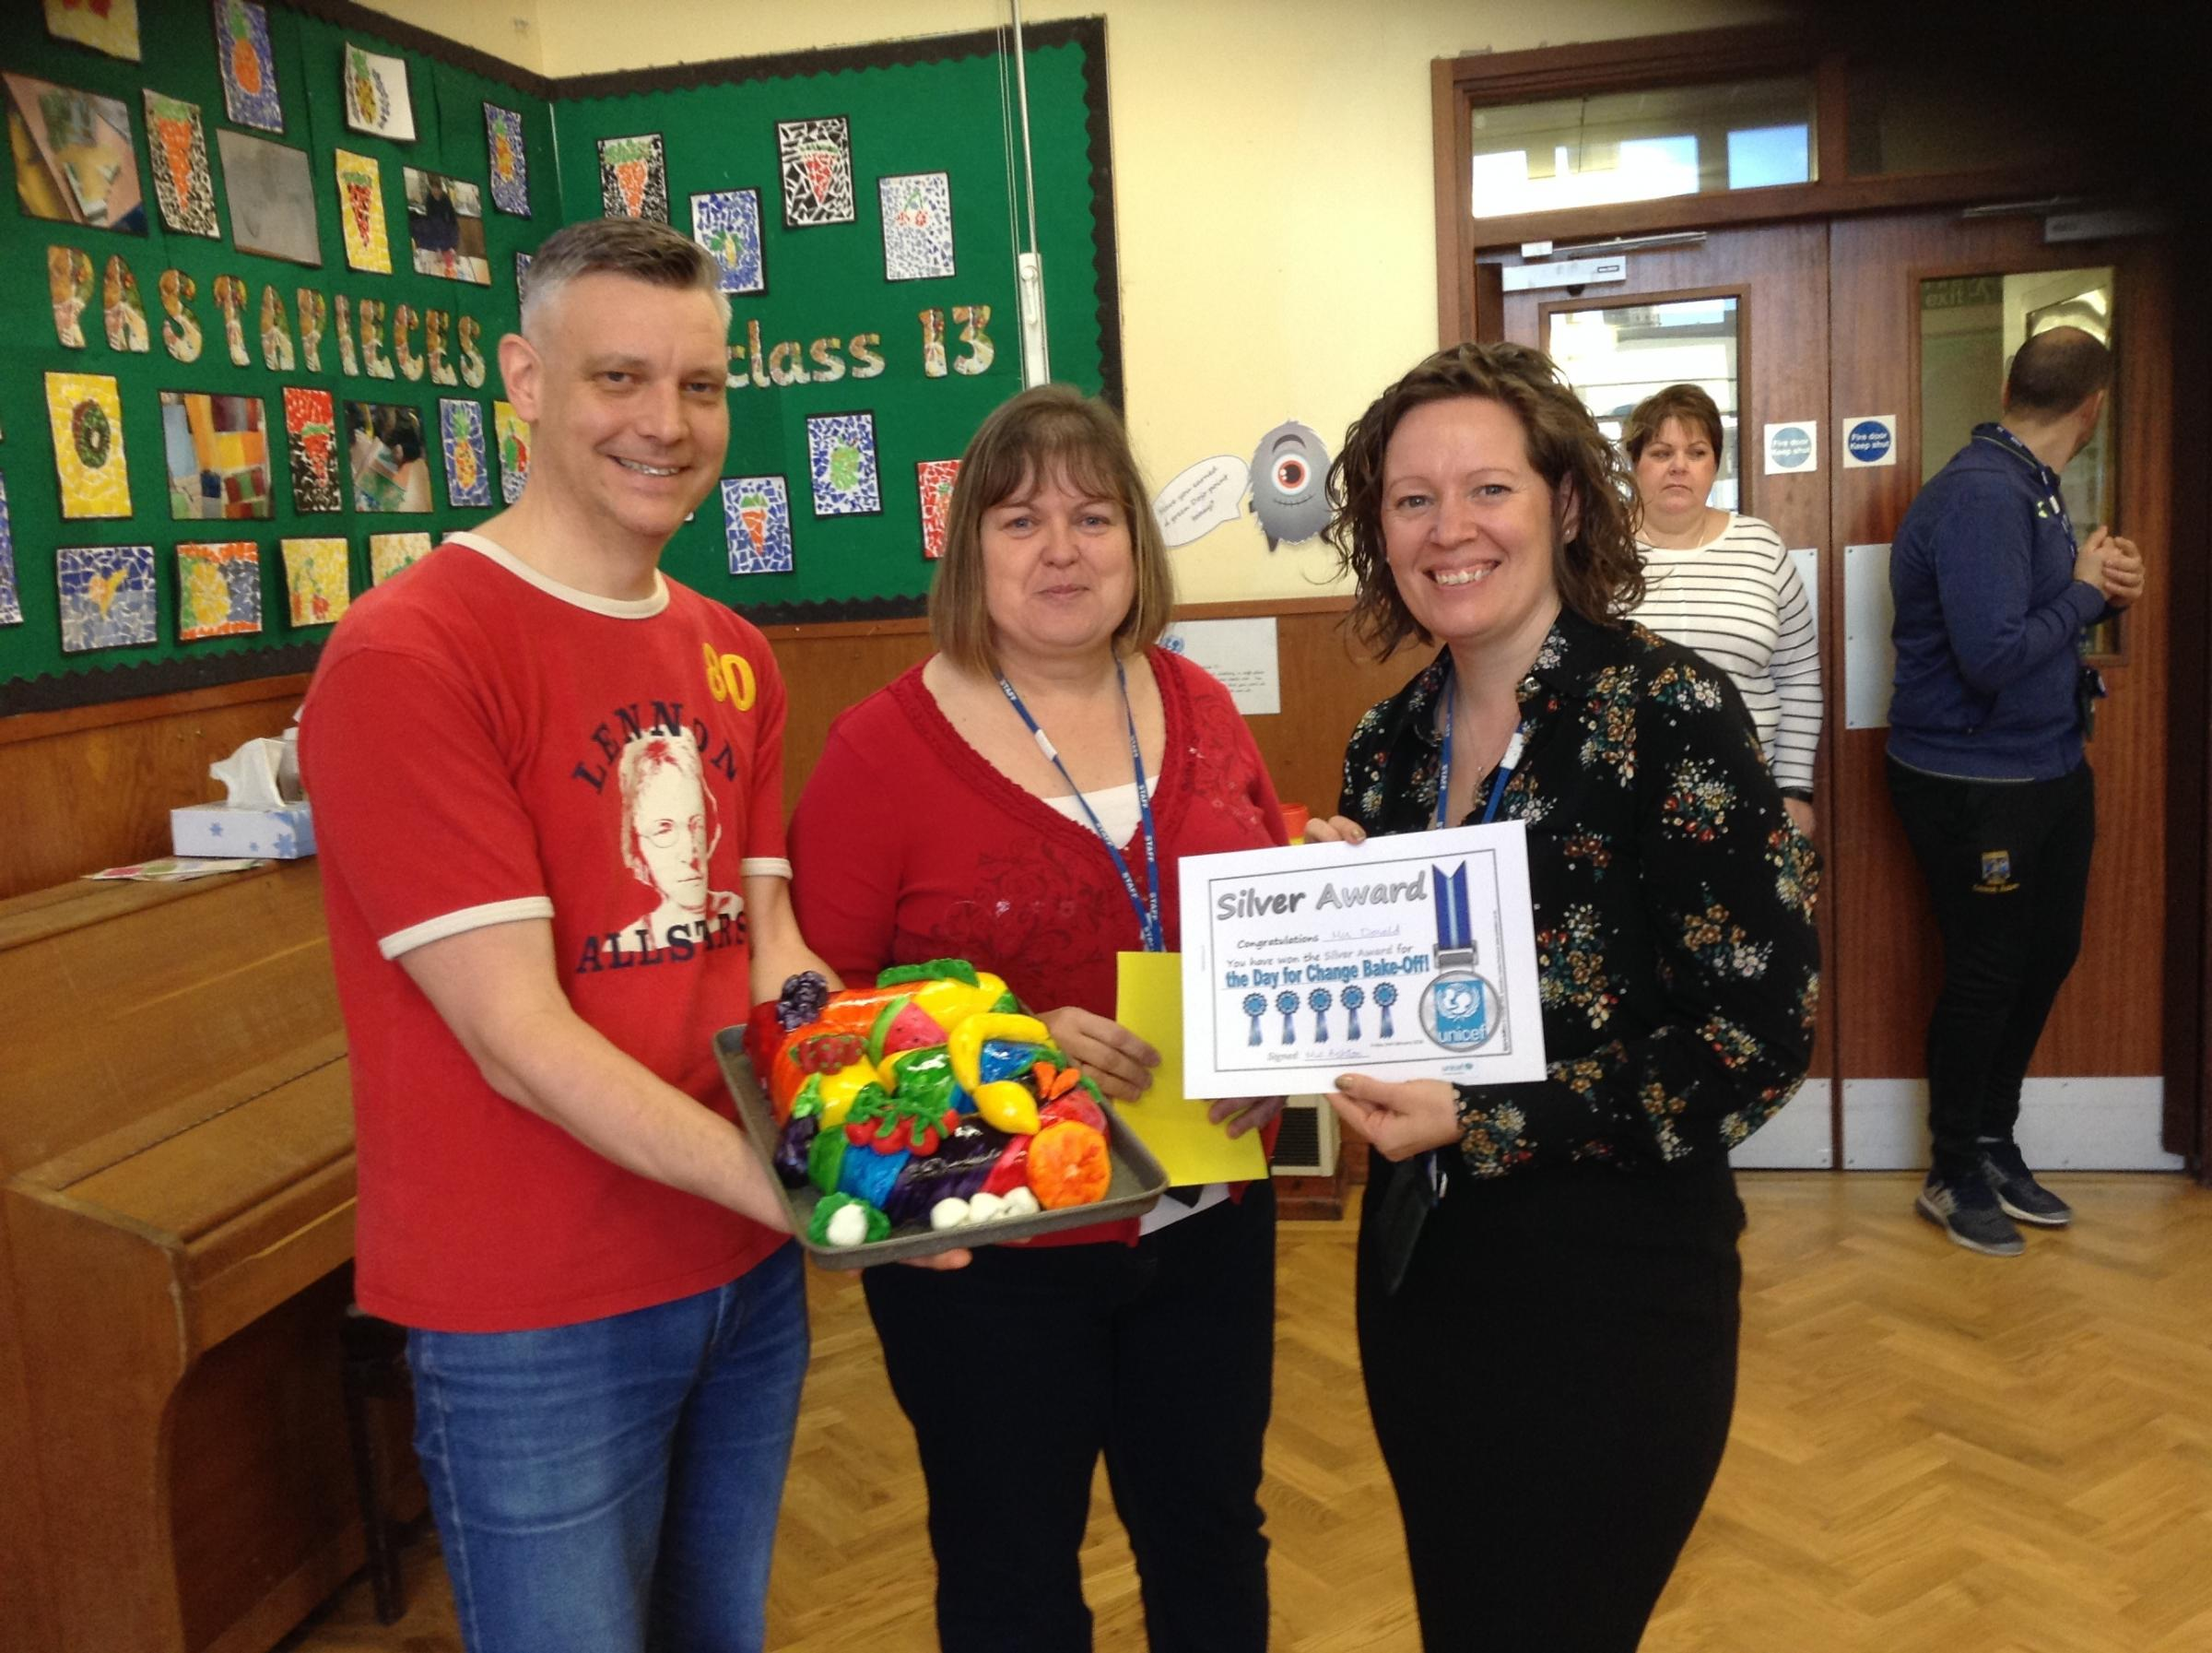 Teacher Carla Donald, who came second in the Glusburn Primary School UNICEF bake-off, pictured with judge Annette Waggett and Richard Hunt